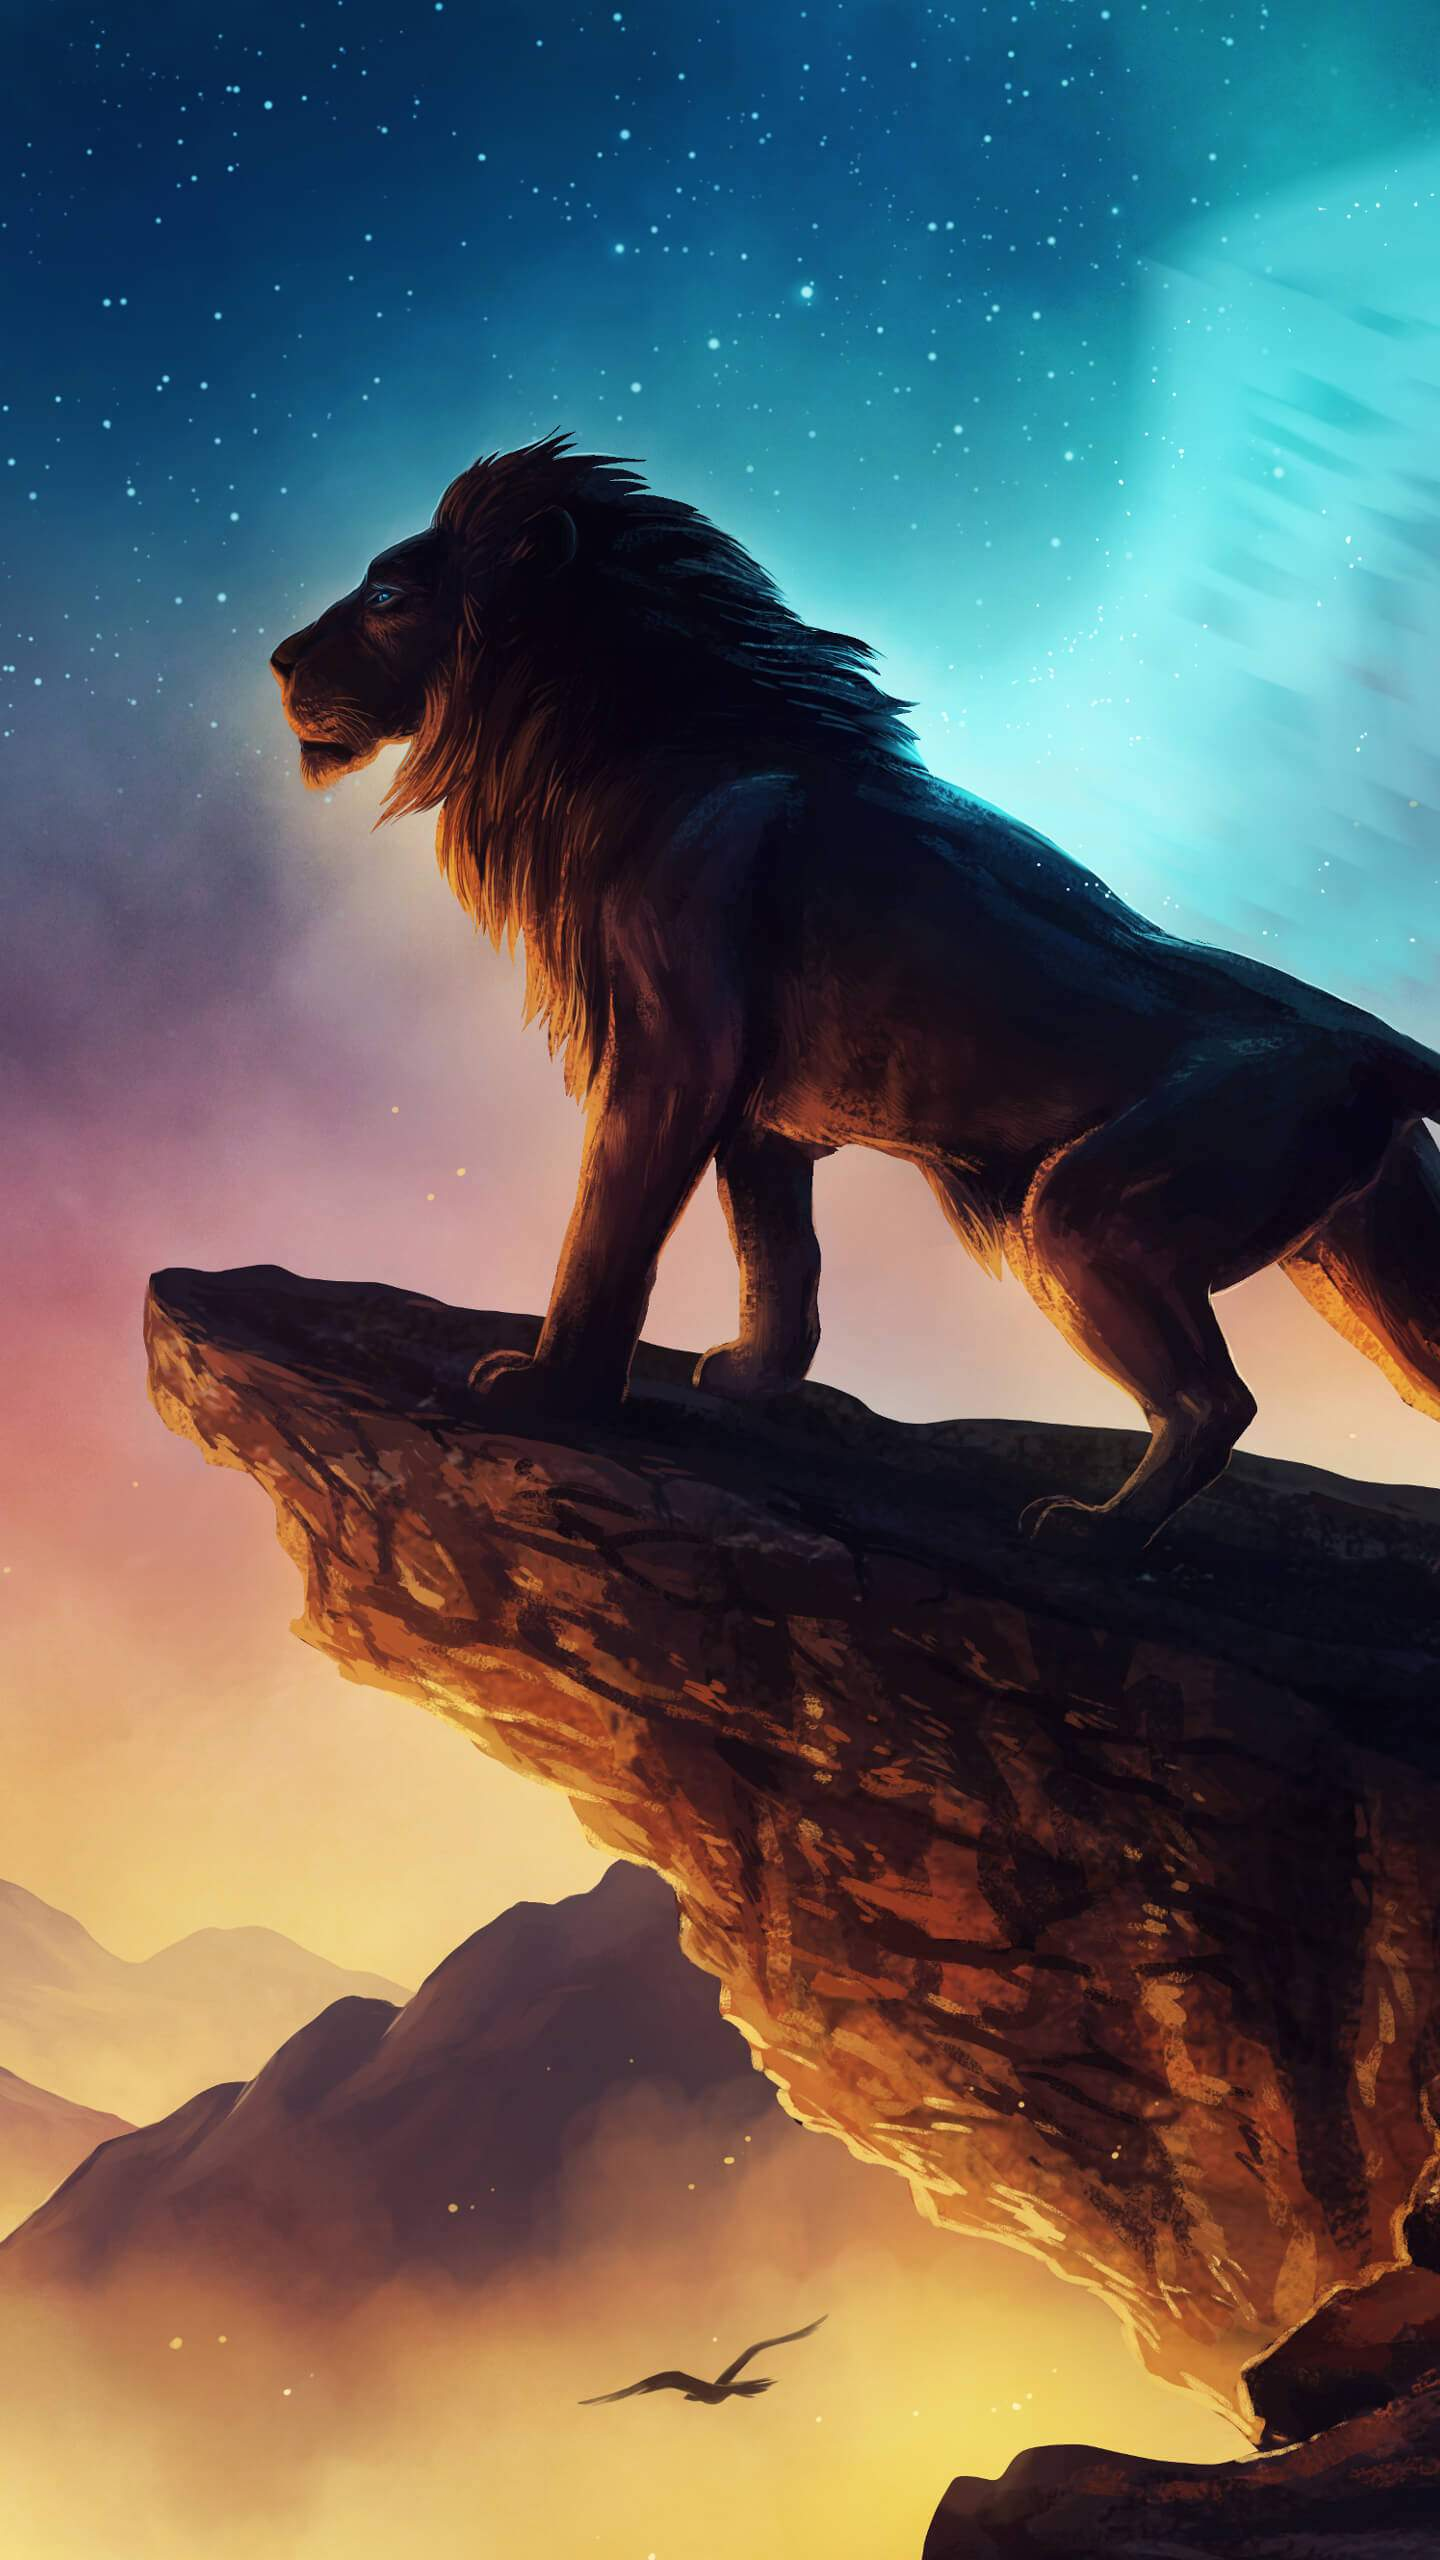 The lion king iphone wallpaper iphone wallpapers - Lion king wallpaper ...